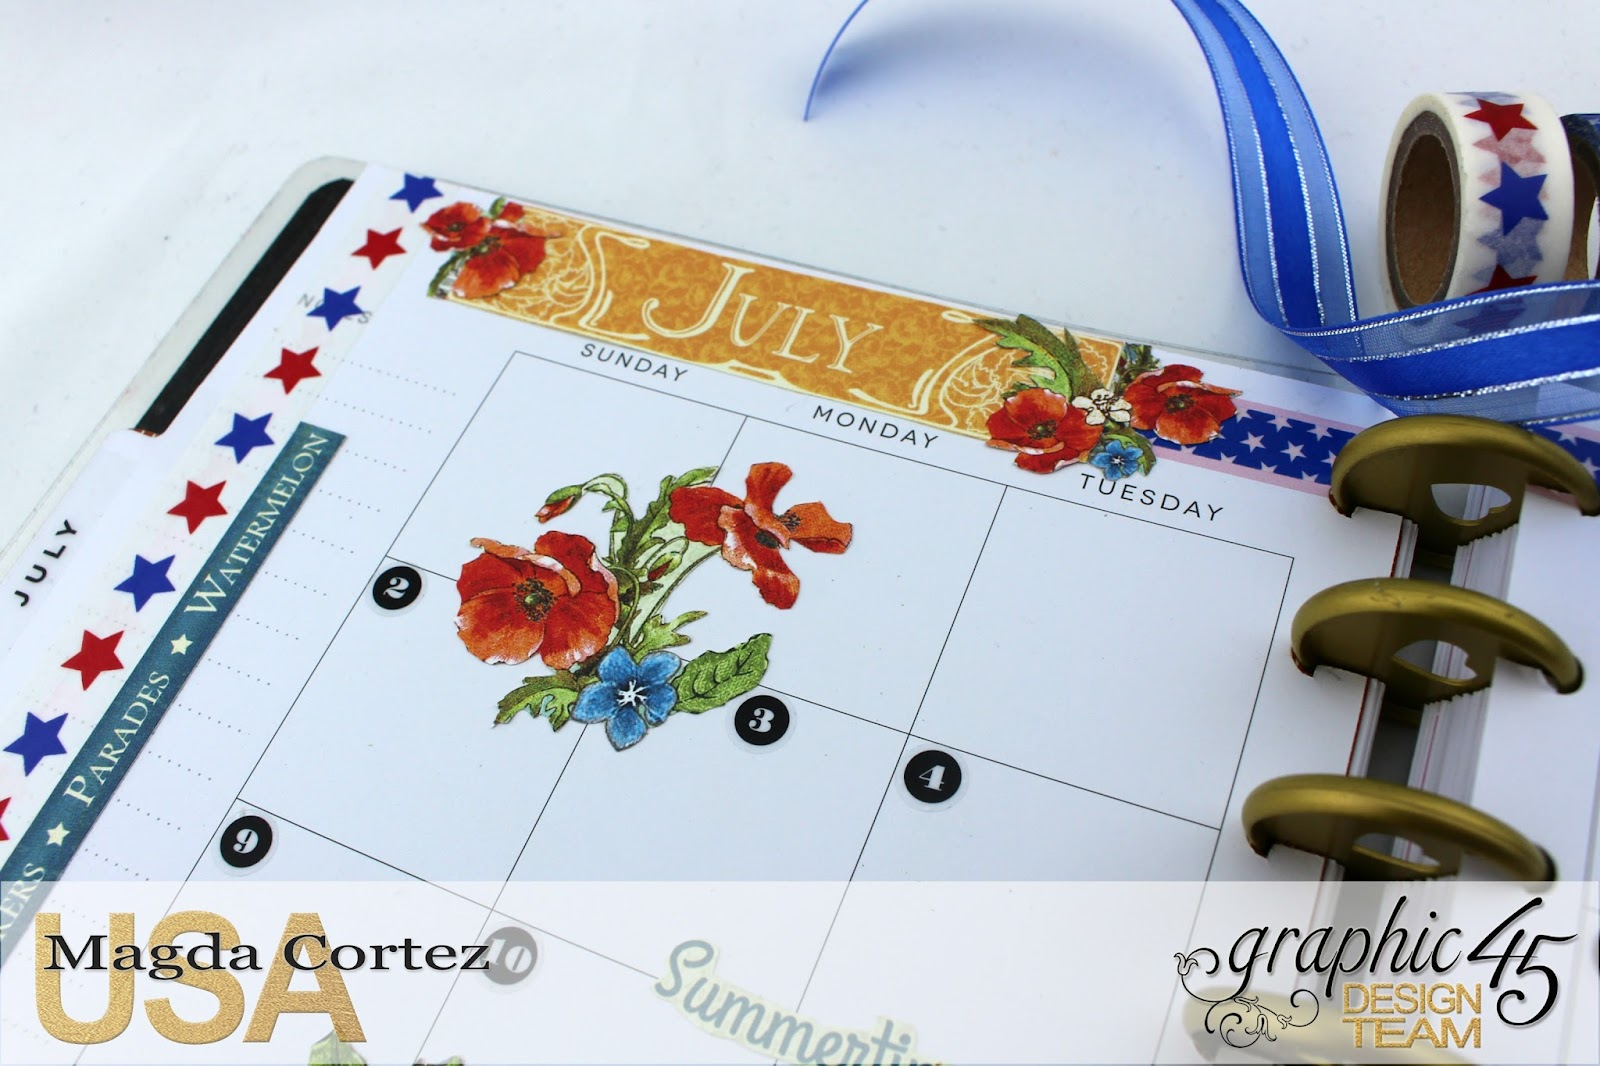 My JULY G45 Planner, Children's Hour By Magda Cortez, Product by G45, Photo 08 of 20  .jpg